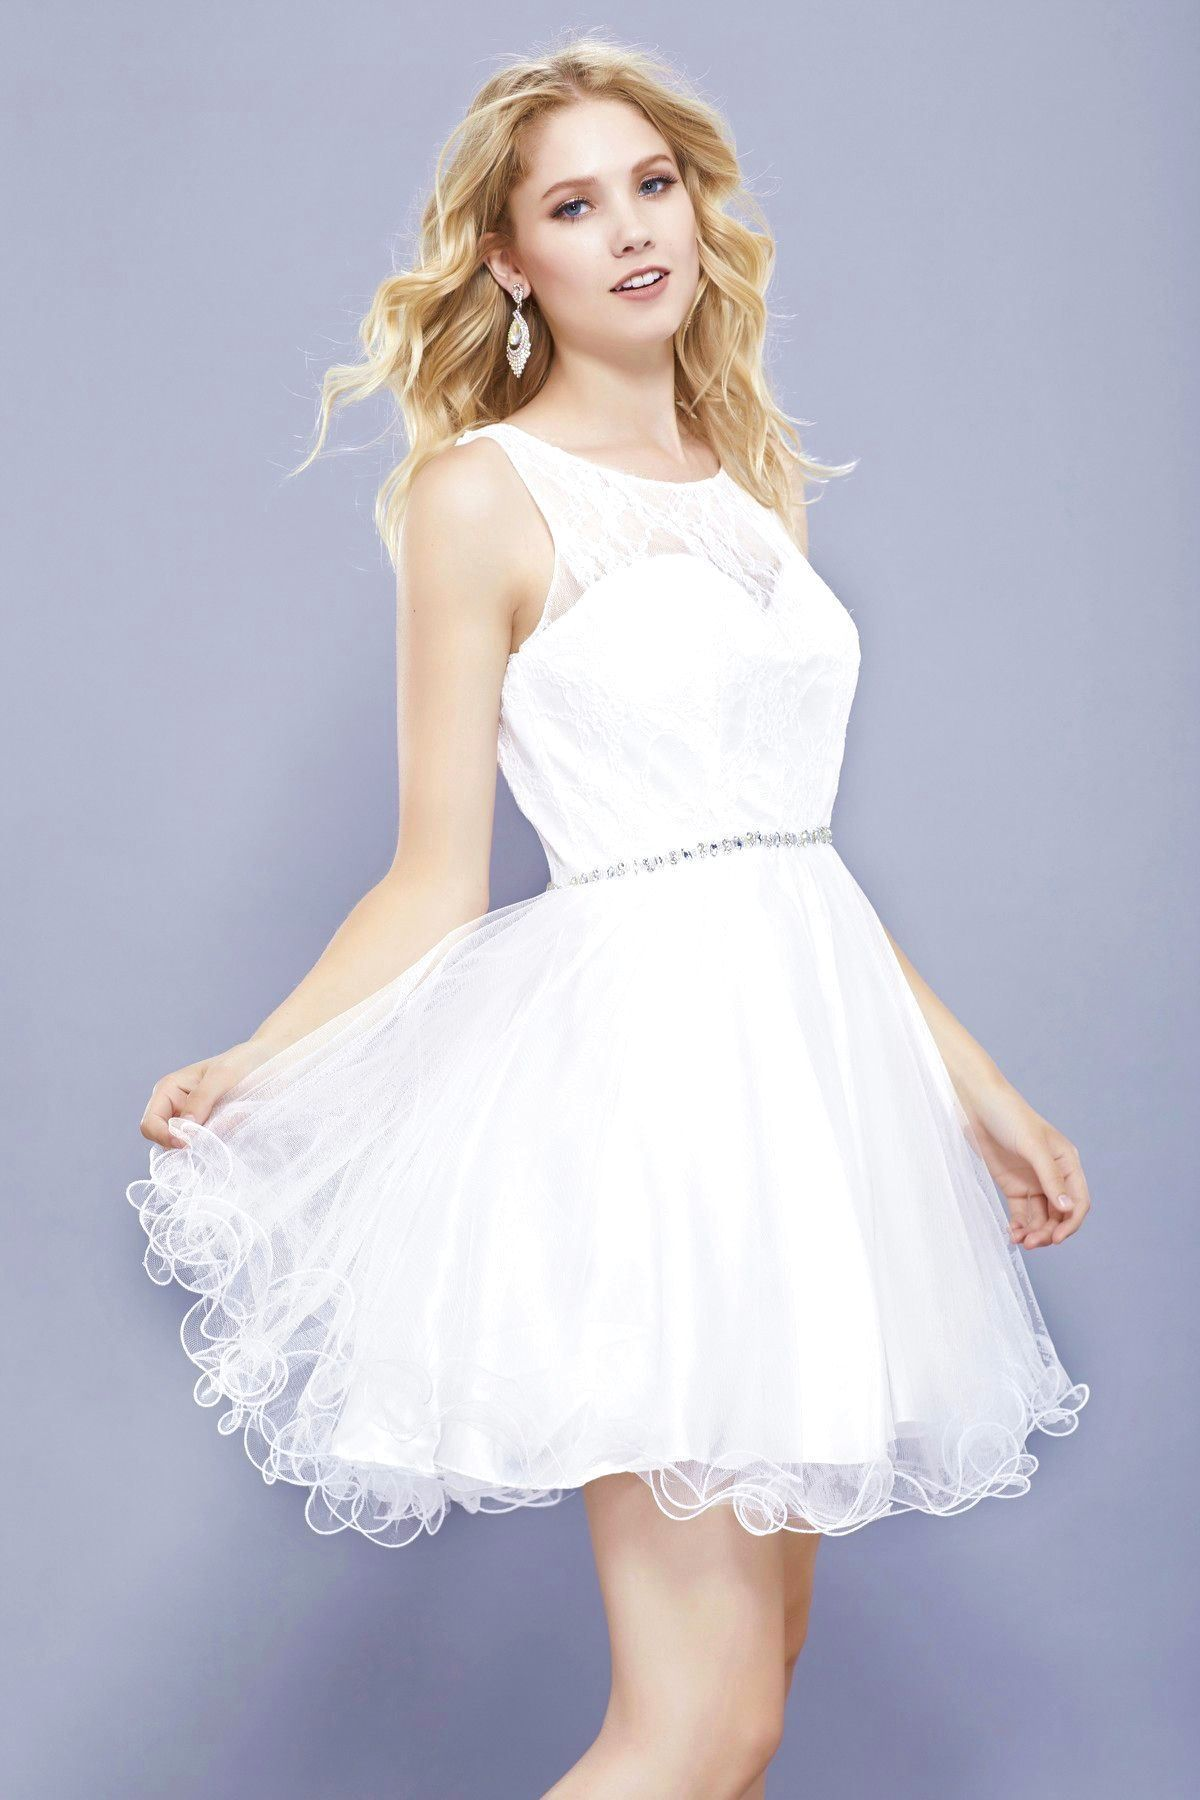 Short ruffled dress with lace bodice by nox anabel lace